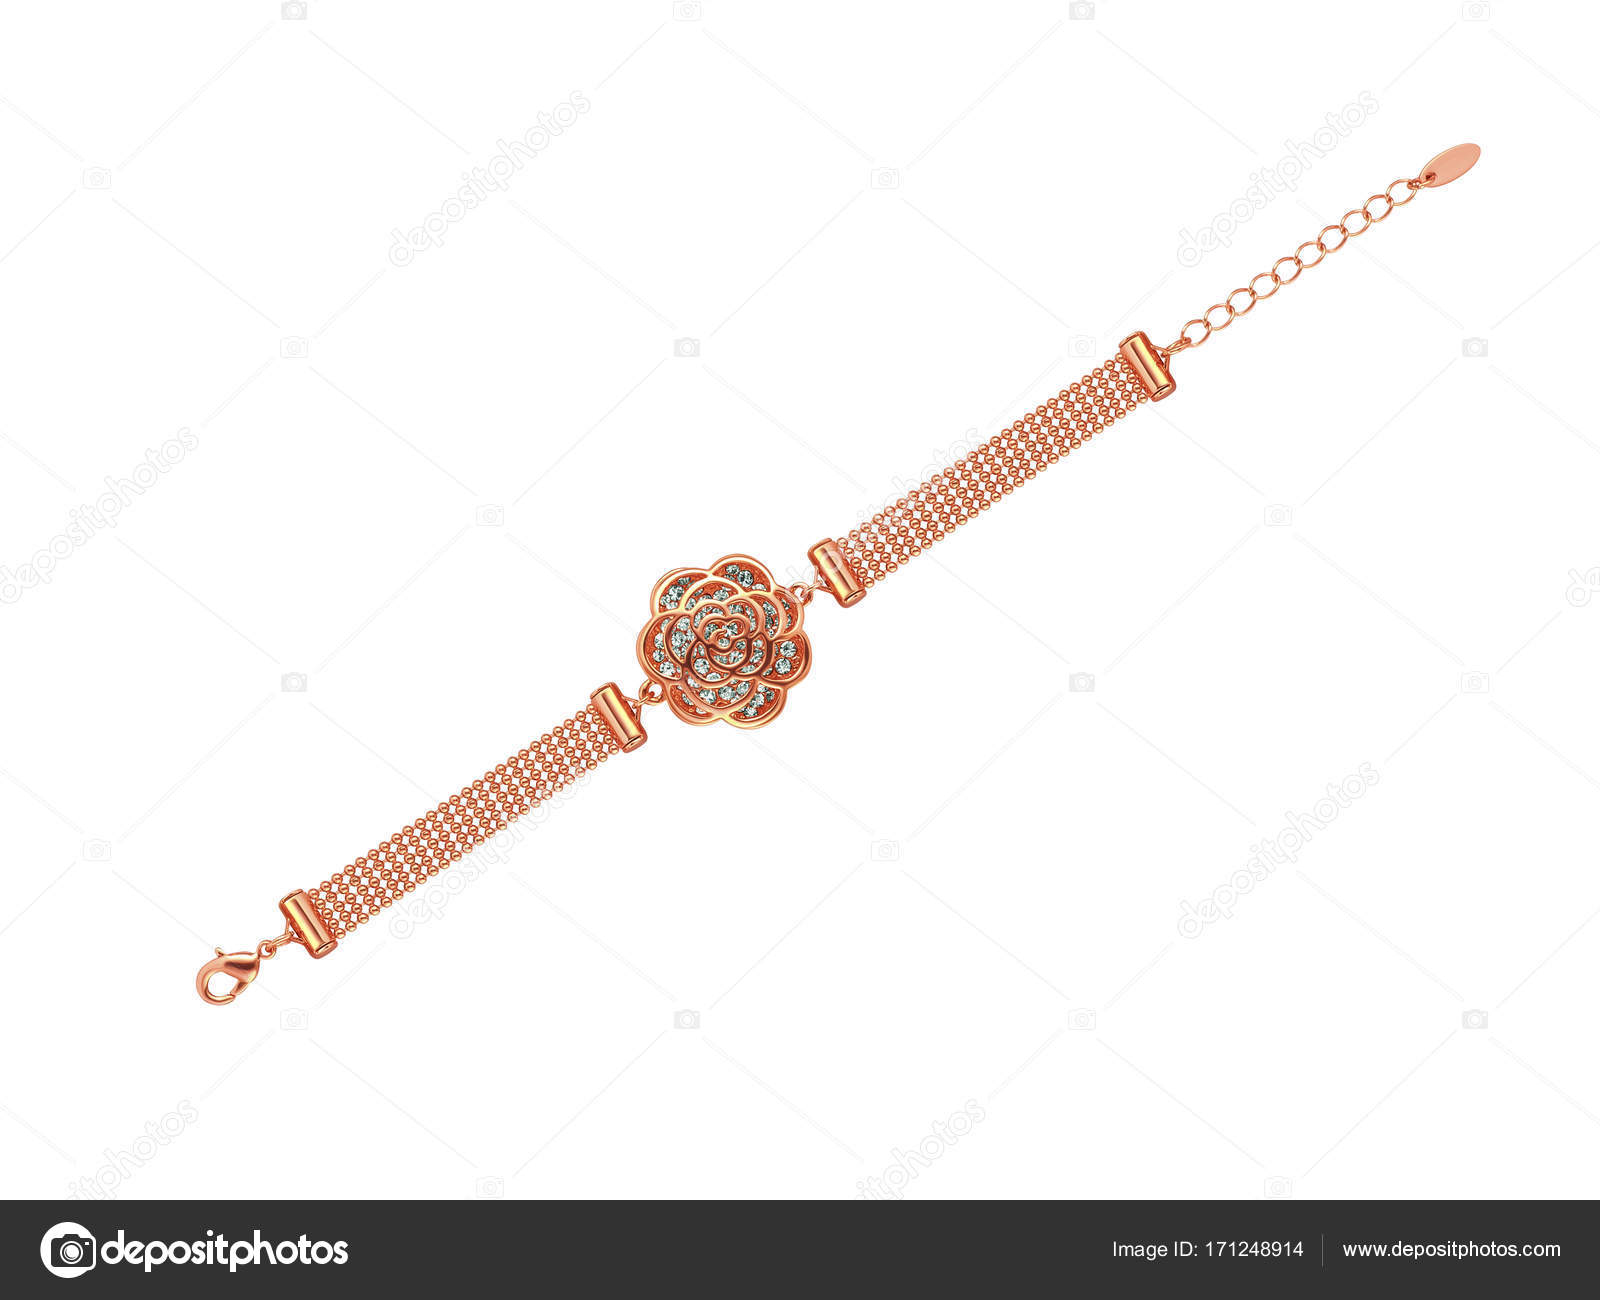 Beautiful rose gold Bracelet with diamonds and delicate flower